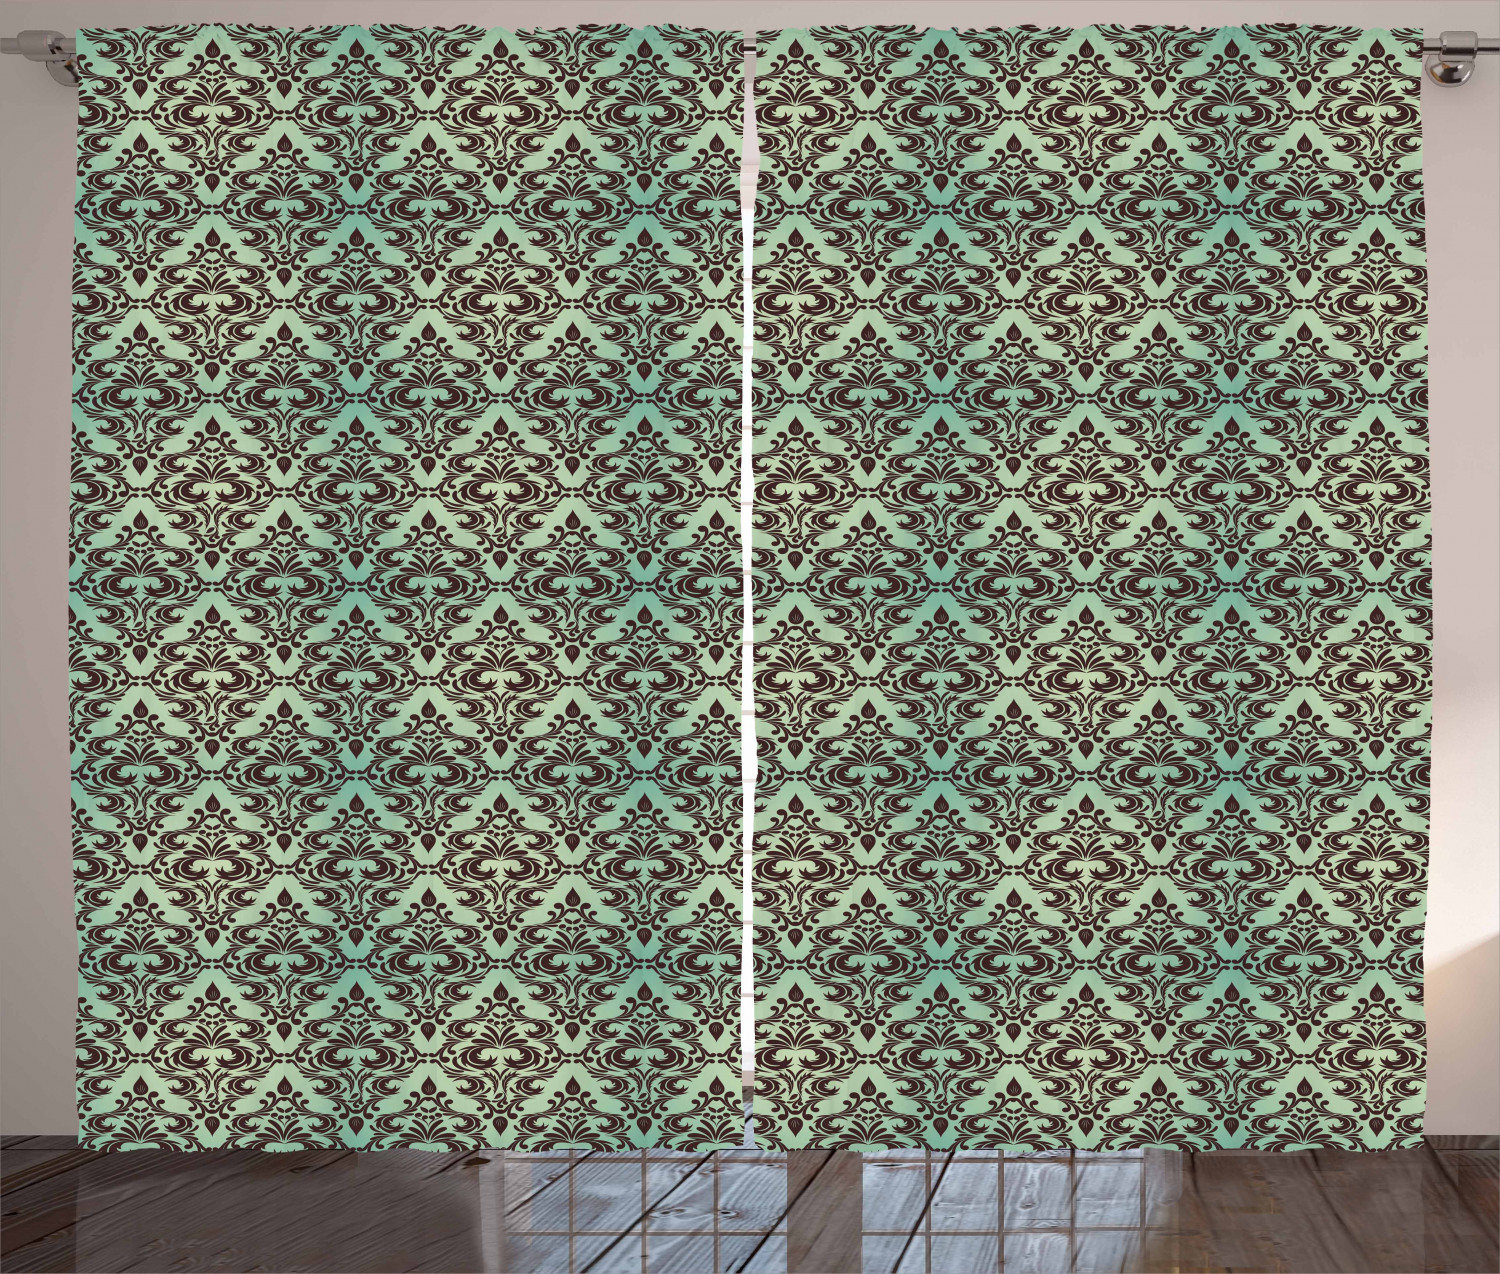 mint and brown curtains 2 panels set baroque flower motifs in damask style traditional revival art window drapes for living room bedroom 108w x 84l